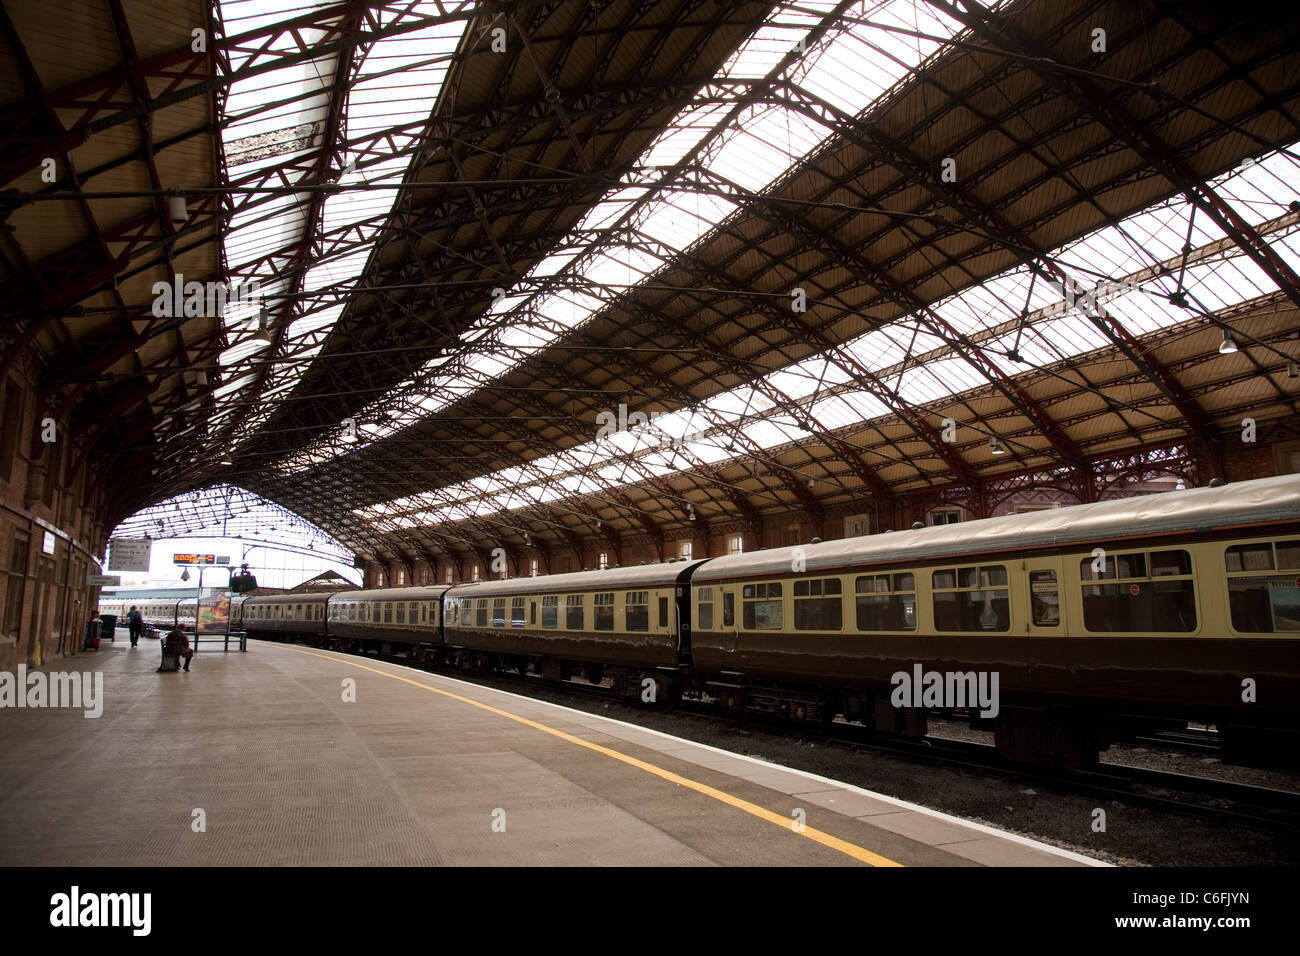 Interior of Bristol Temple Meads Station, Bristol, England, UK Stock Photo